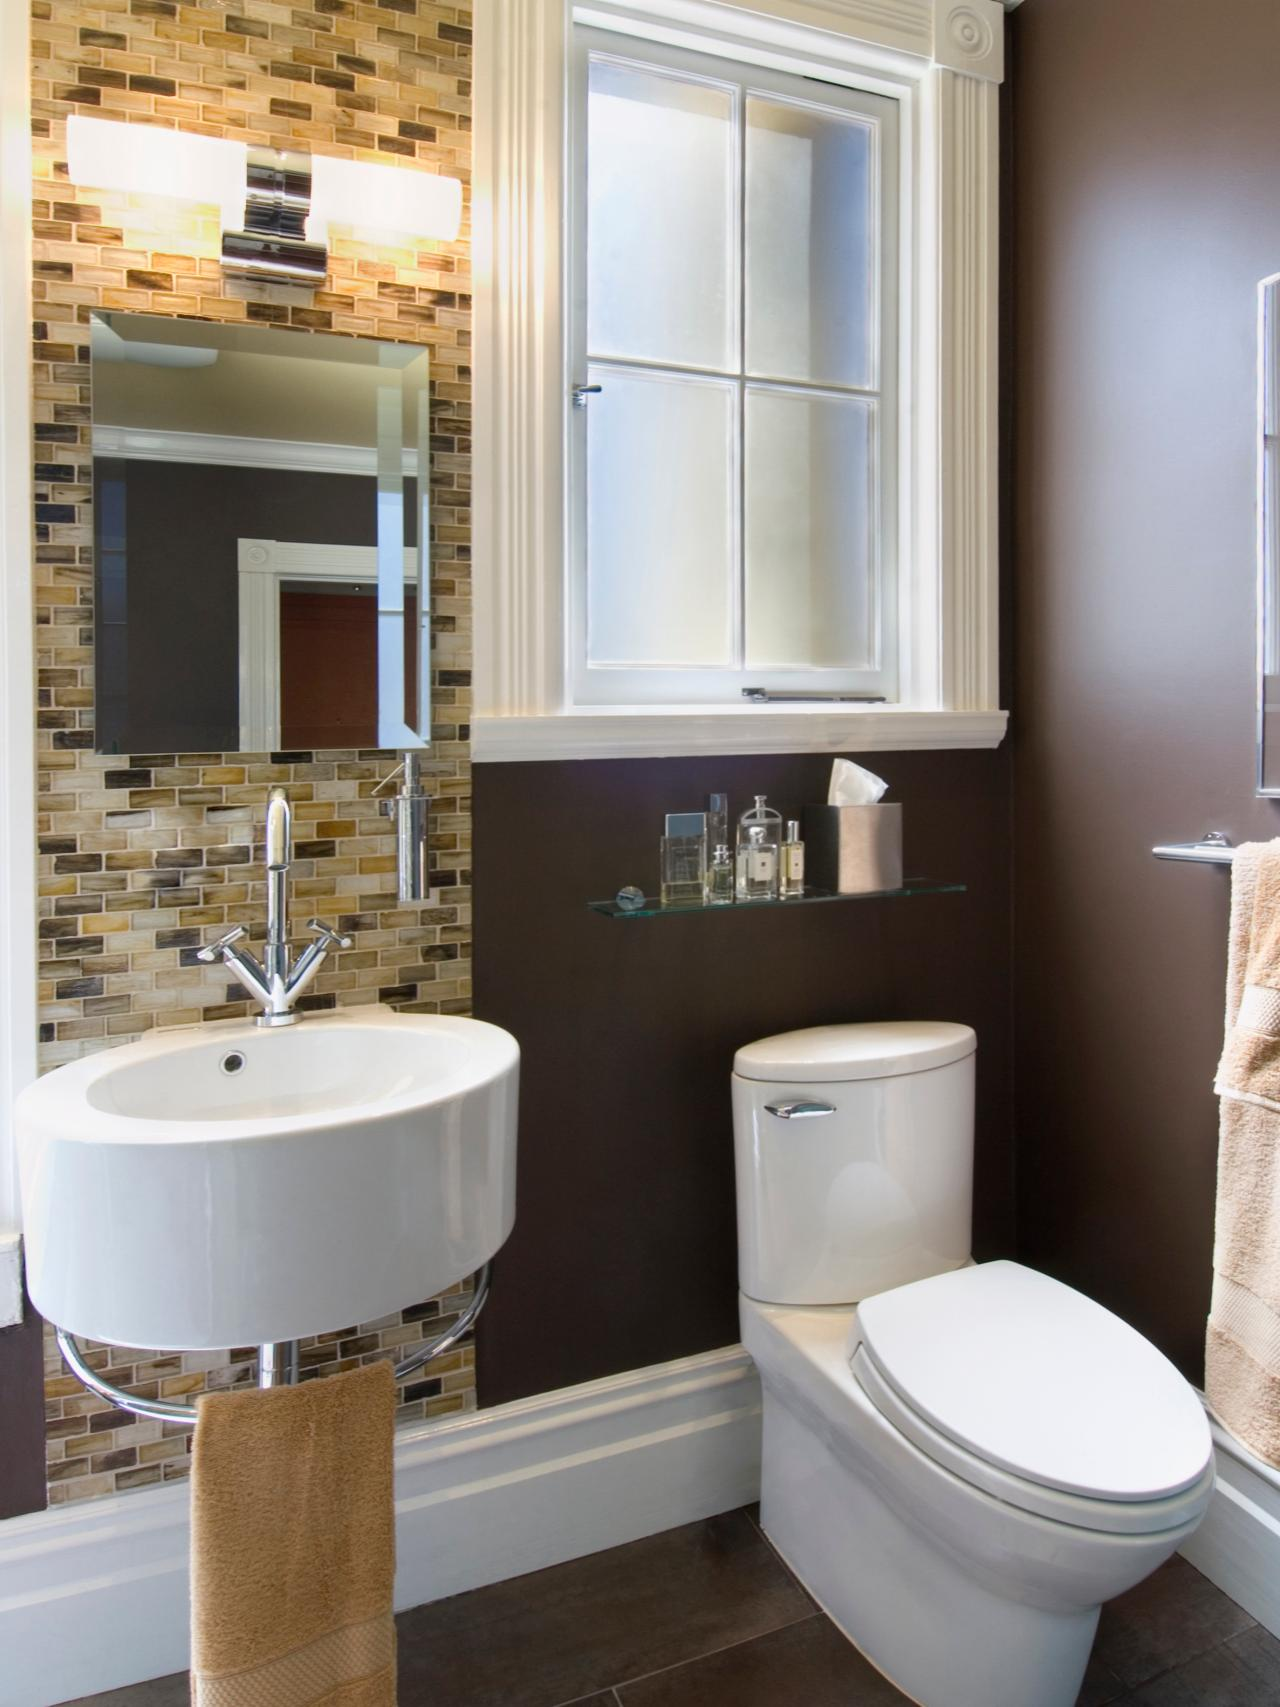 focus on storage - Small Bathroom Remodel Ideas